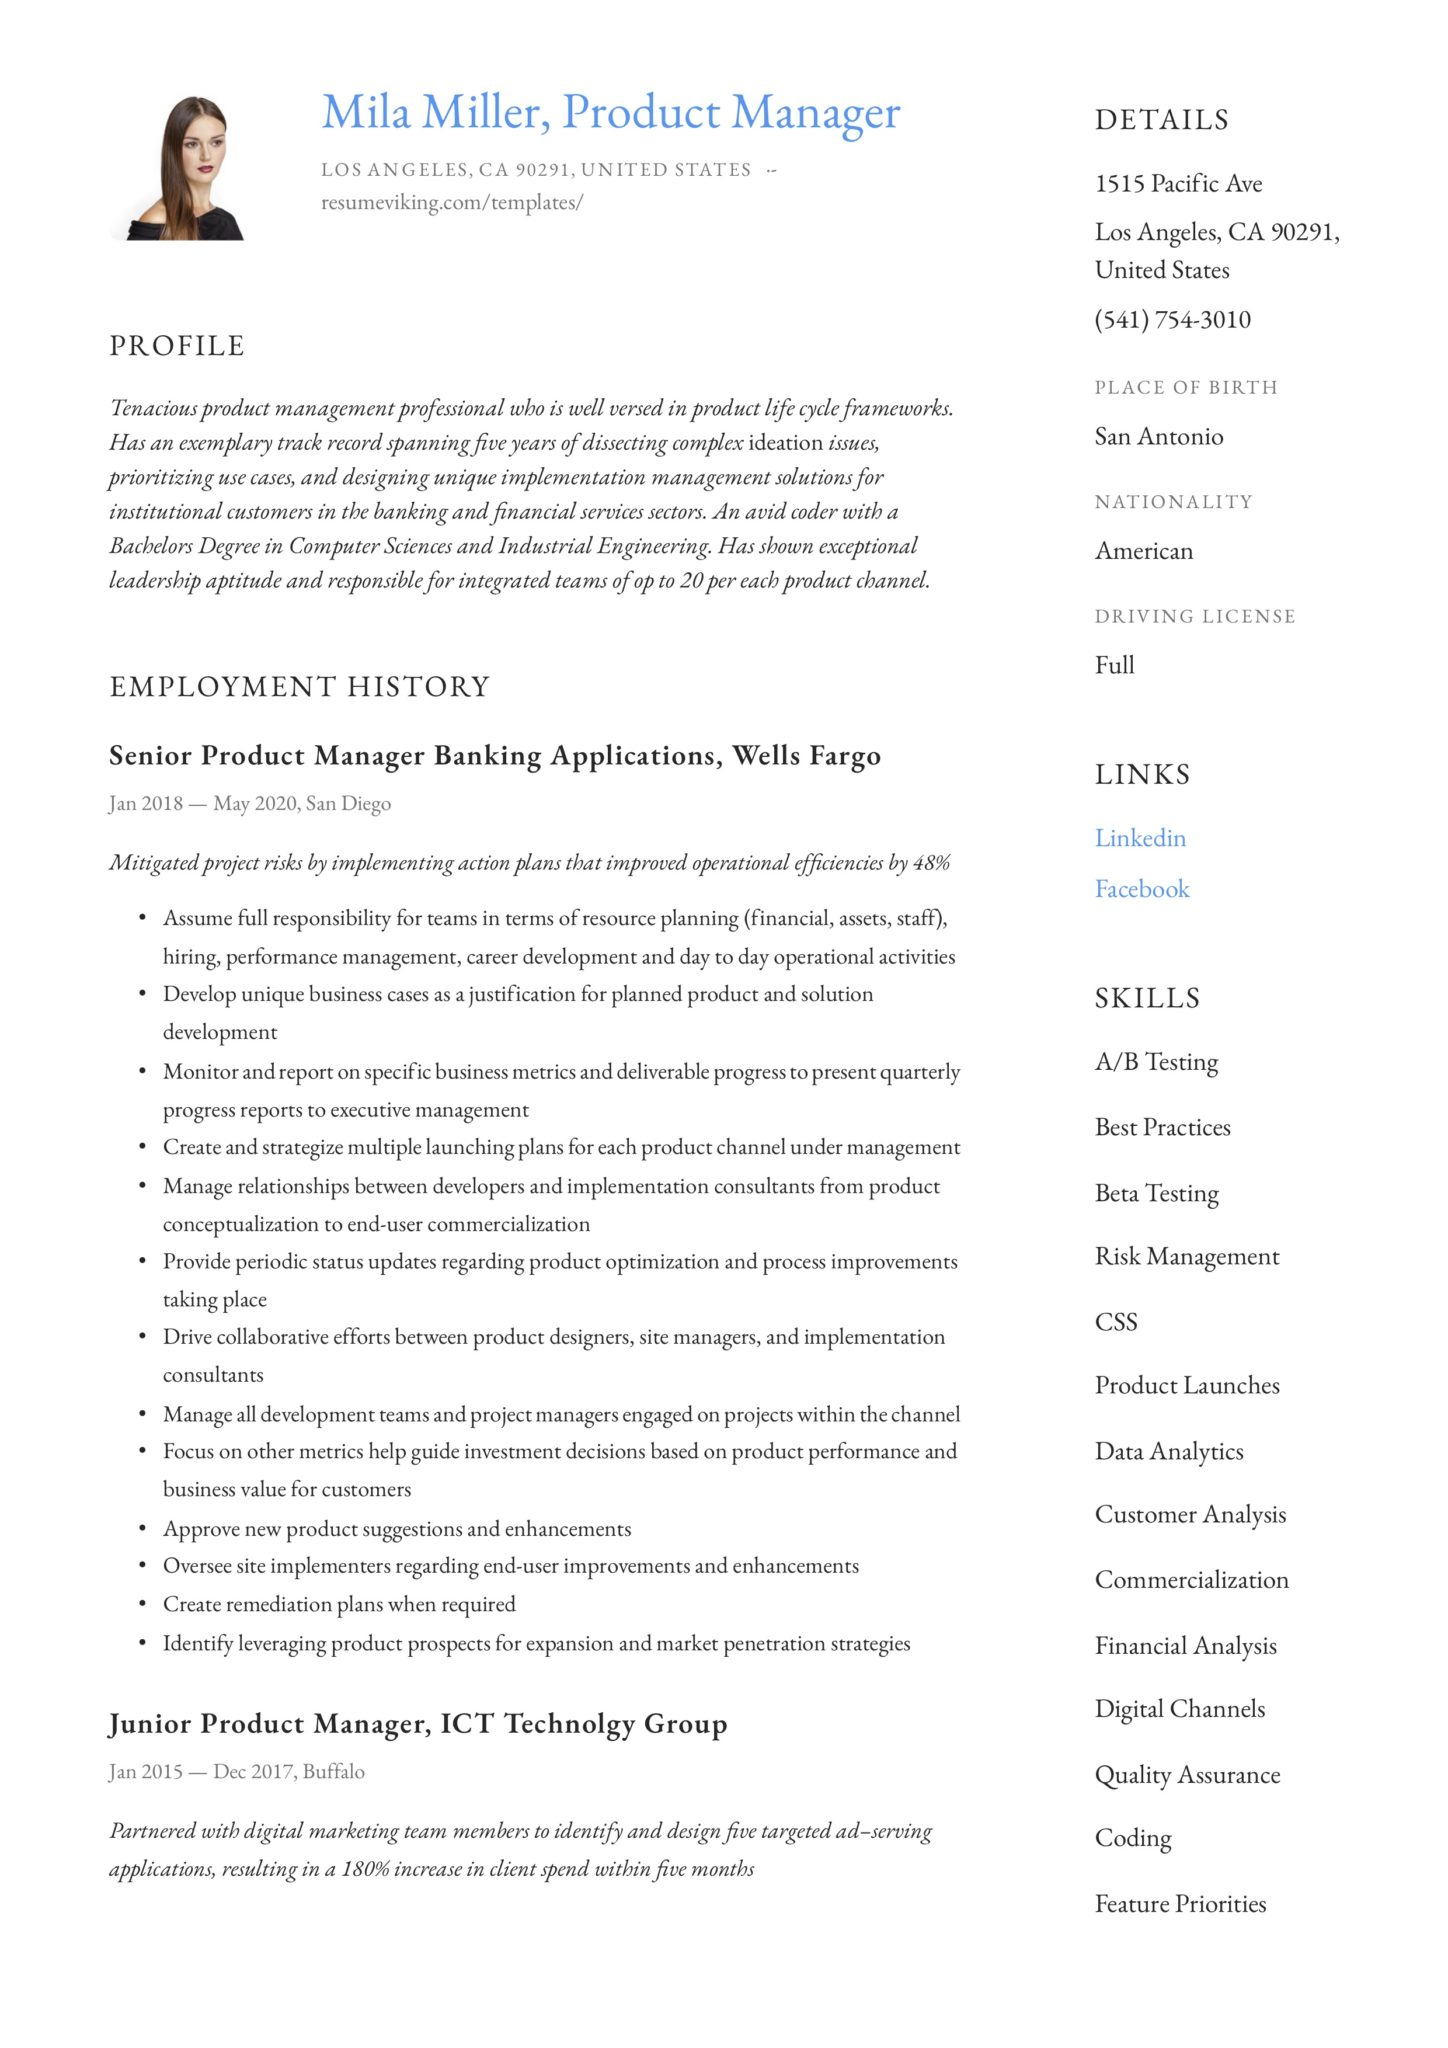 product manager resume guide samples pdf keywords scaled example of modern for Resume Product Manager Resume Keywords